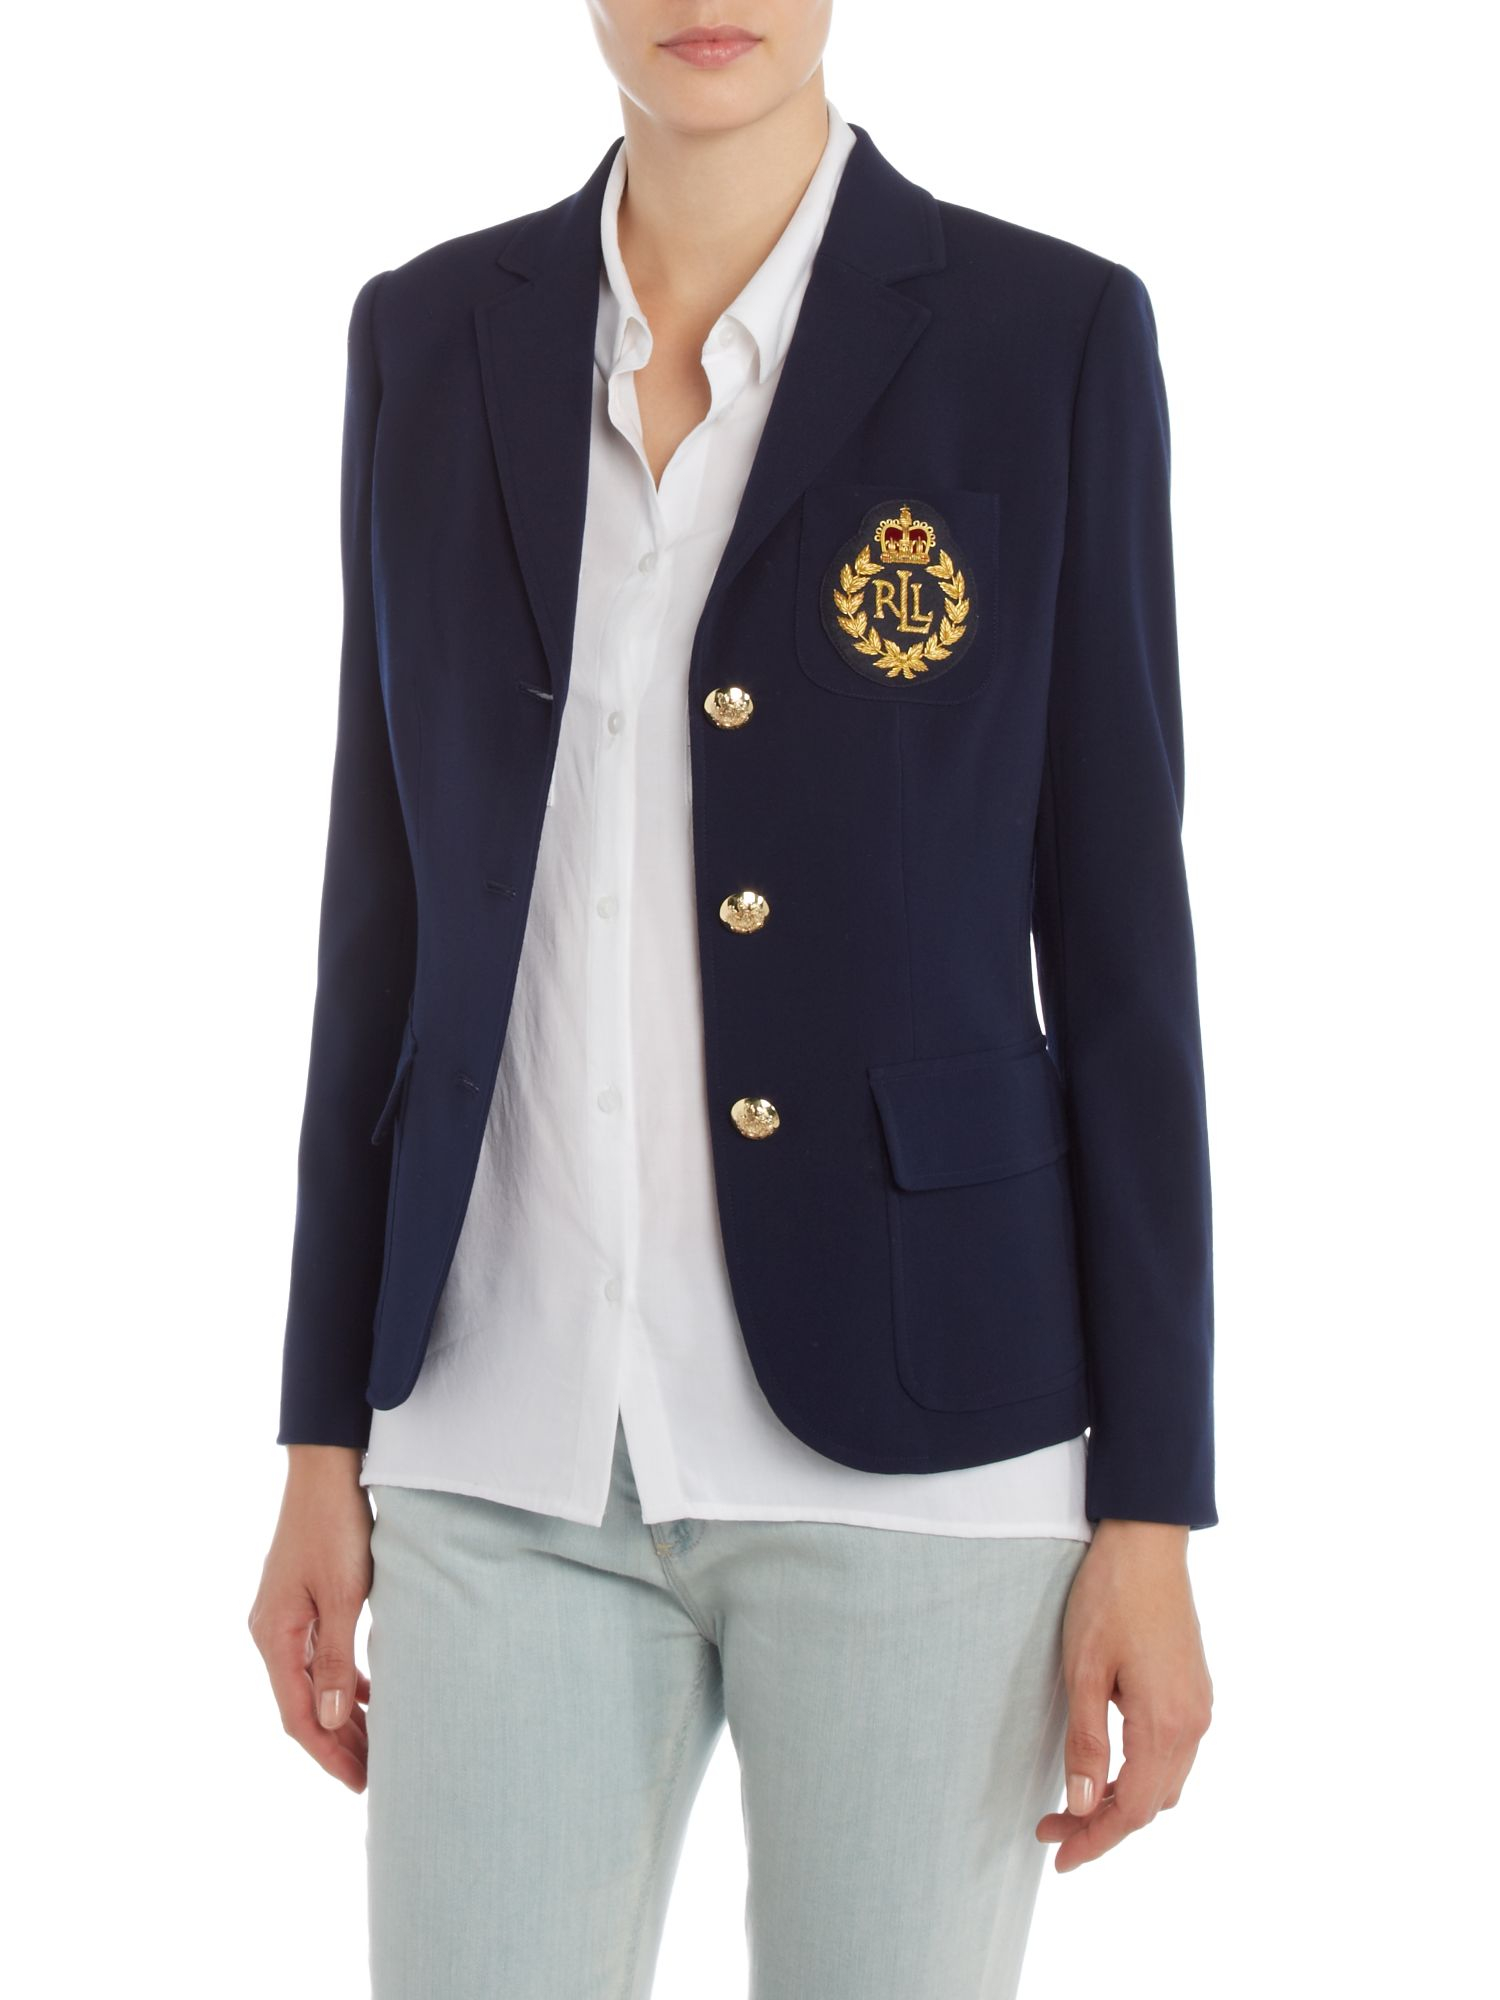 lauren by ralph lauren long sleeved blazer with crest pocket detail in. Black Bedroom Furniture Sets. Home Design Ideas